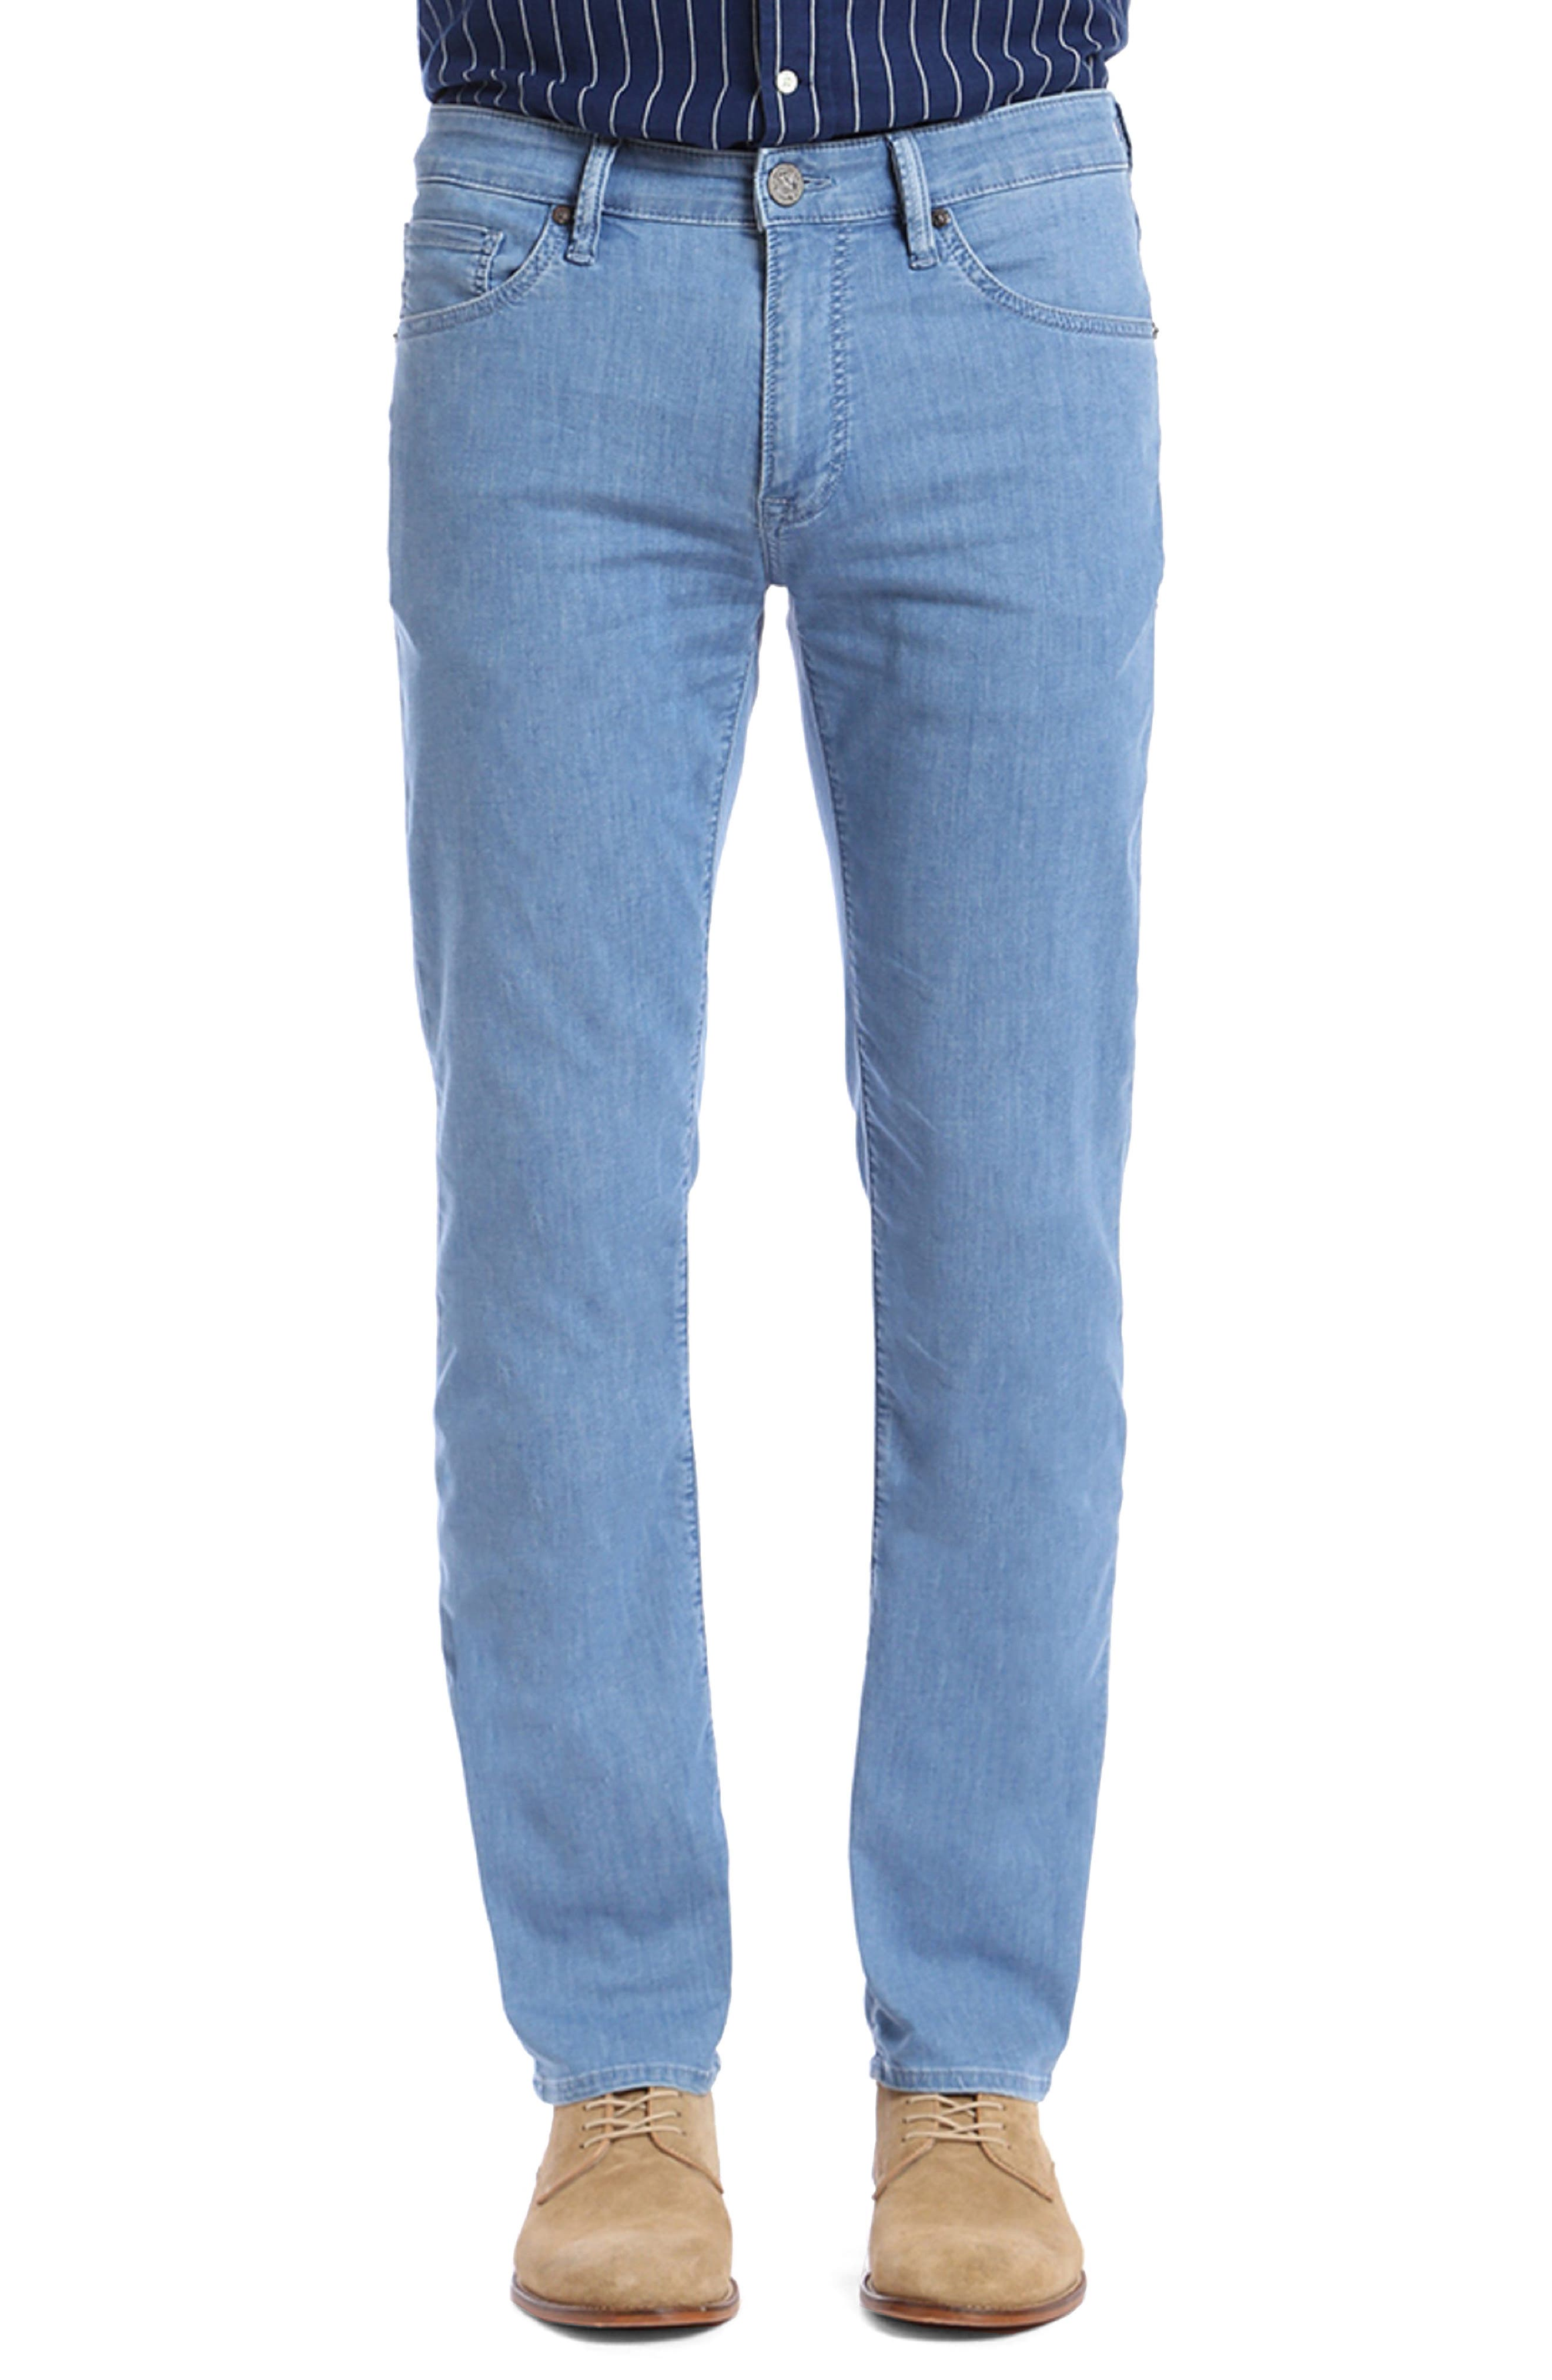 Charisma Relaxed Fit Jeans,                         Main,                         color, LIGHT MAUI DENIM